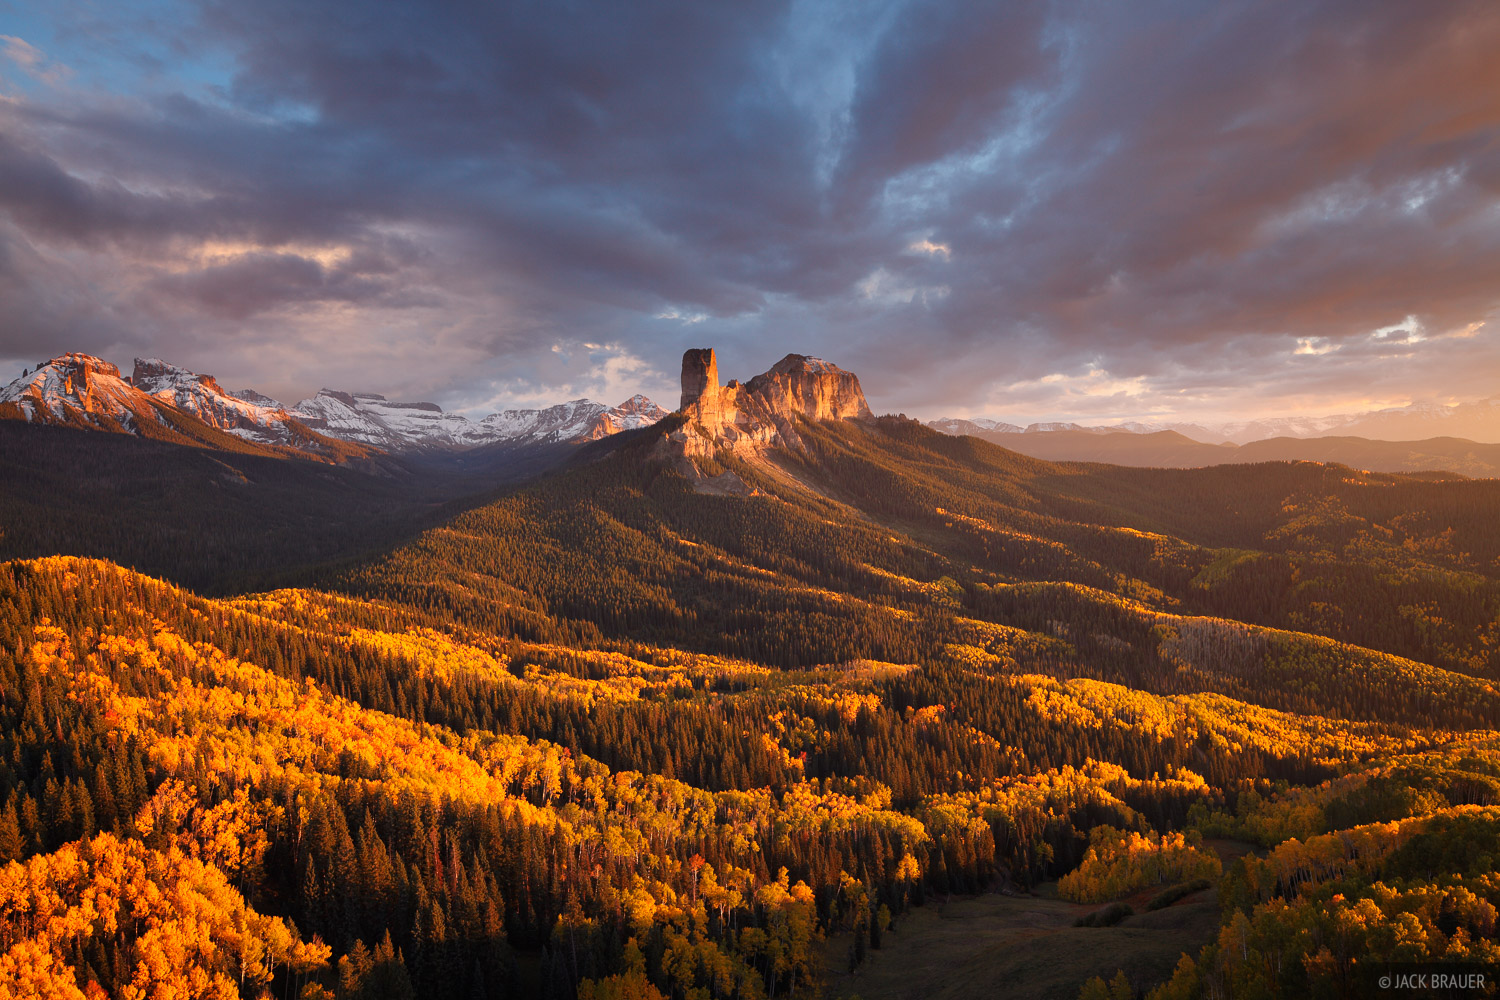 Chimney Rock, Courthouse Mountain, Cimarrons, Ridgway, San Juan Mountains, Colorado, sunset, photo